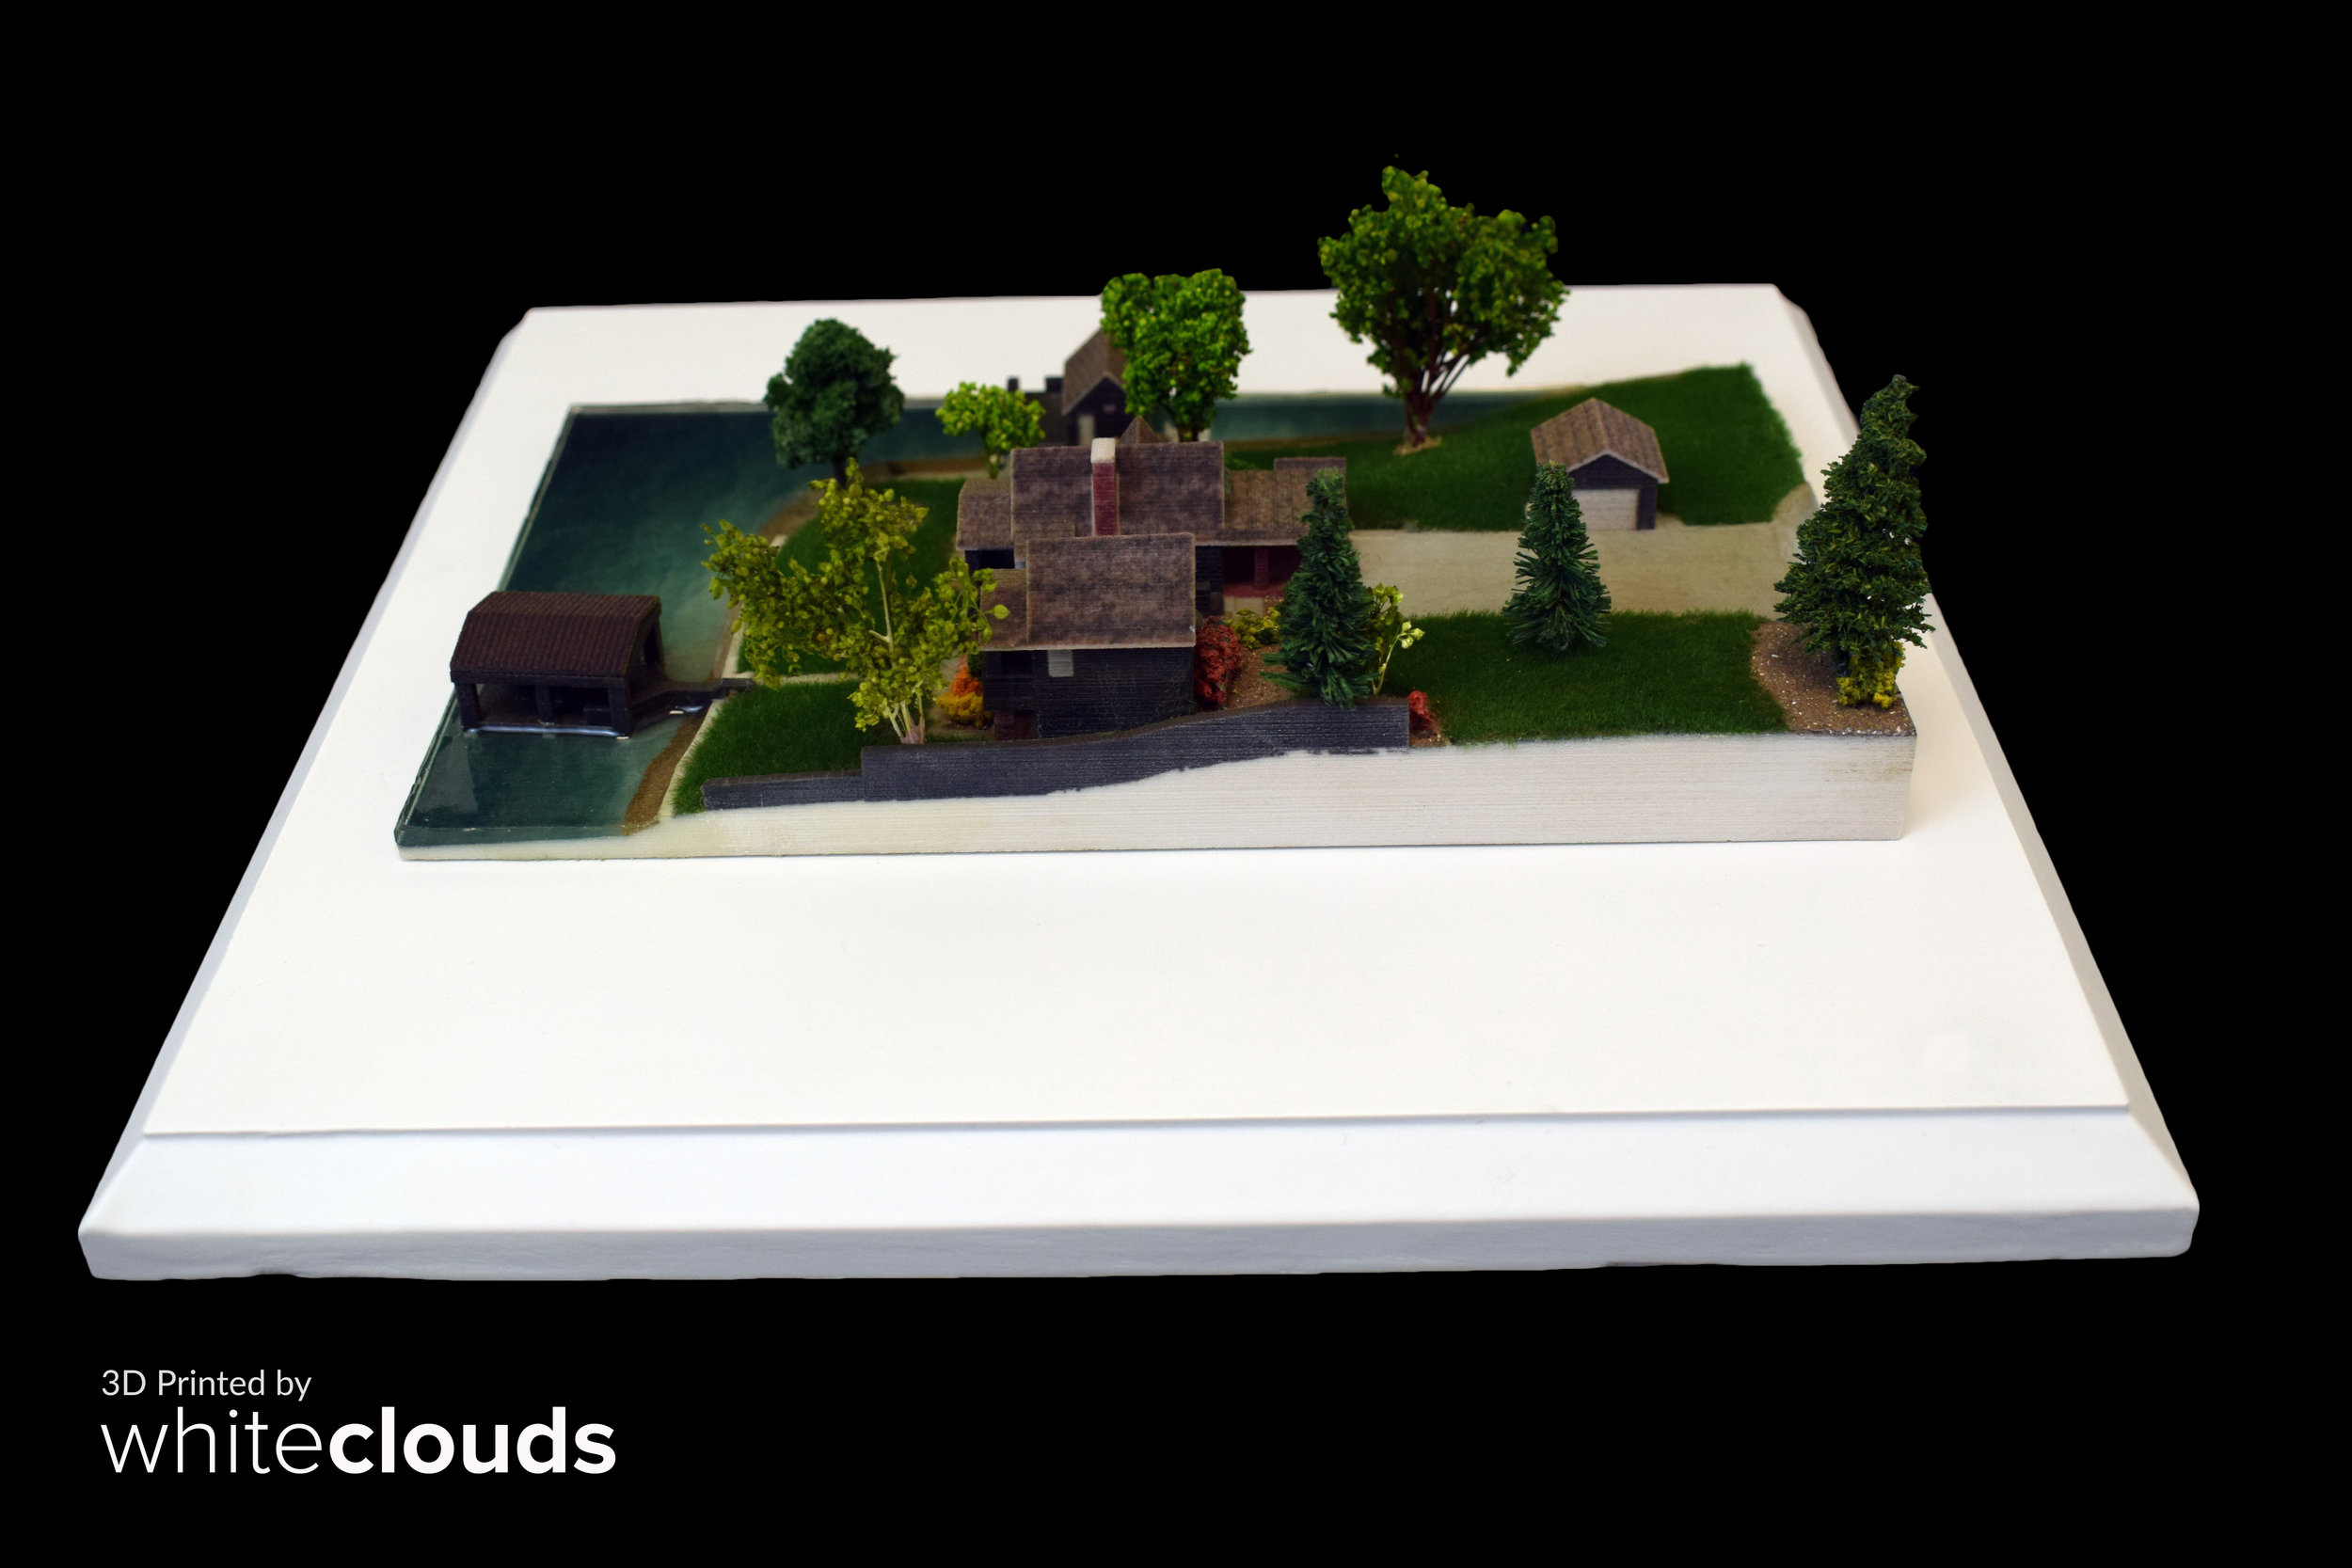 3D-Printed-WhiteClouds-Lake-House-Architecture-Eliermann-Family-Lake-House-3.JPG